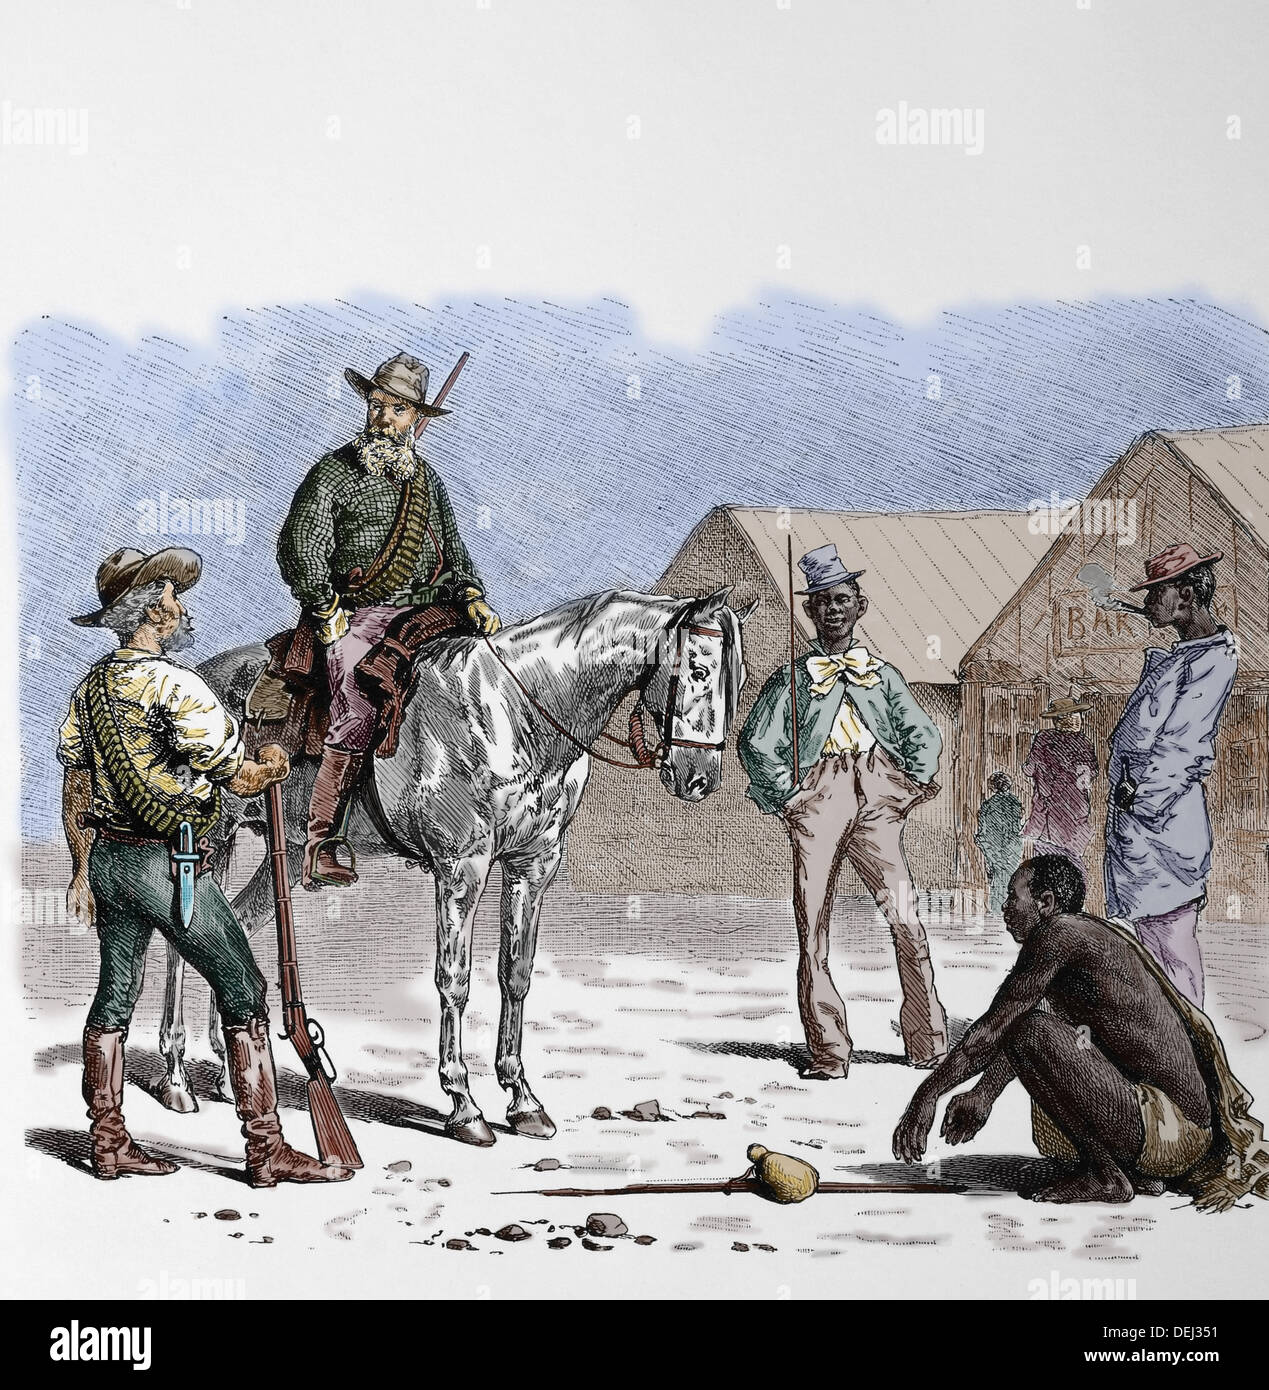 History. South Africa. Boer colonists and black south African. 1860. Colored engraving. - Stock Image